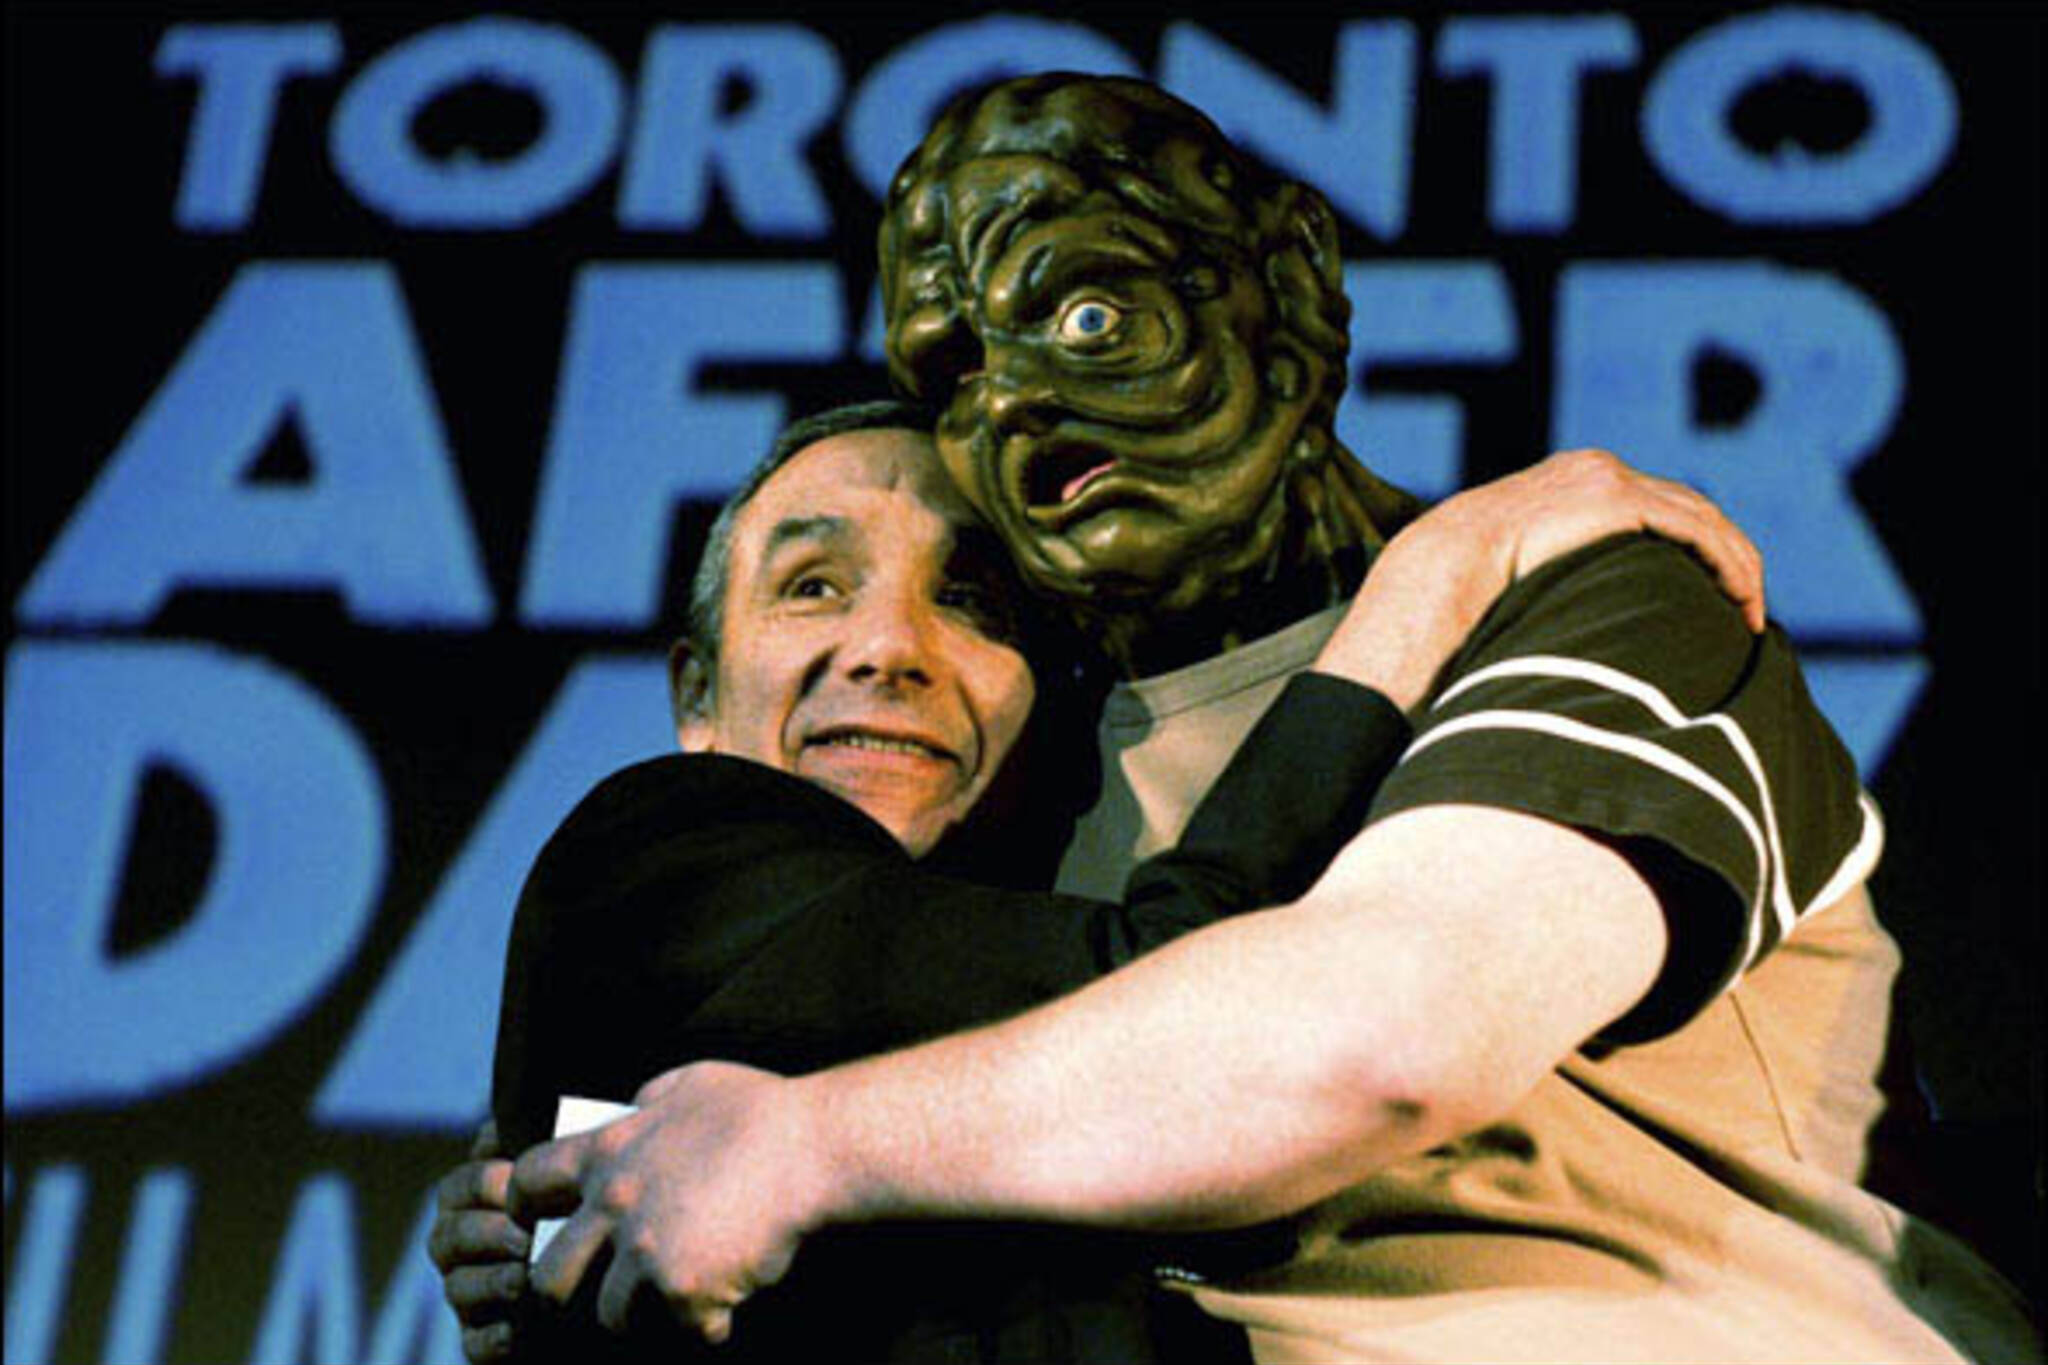 Director Lloyd Kaufman embraces a ghoulish creature on stage after the Toronto premiere screening of Poultrygeist: Night of the Chicken Dead at The Bloor Cinema during the Toronto After Dark Film Festival.